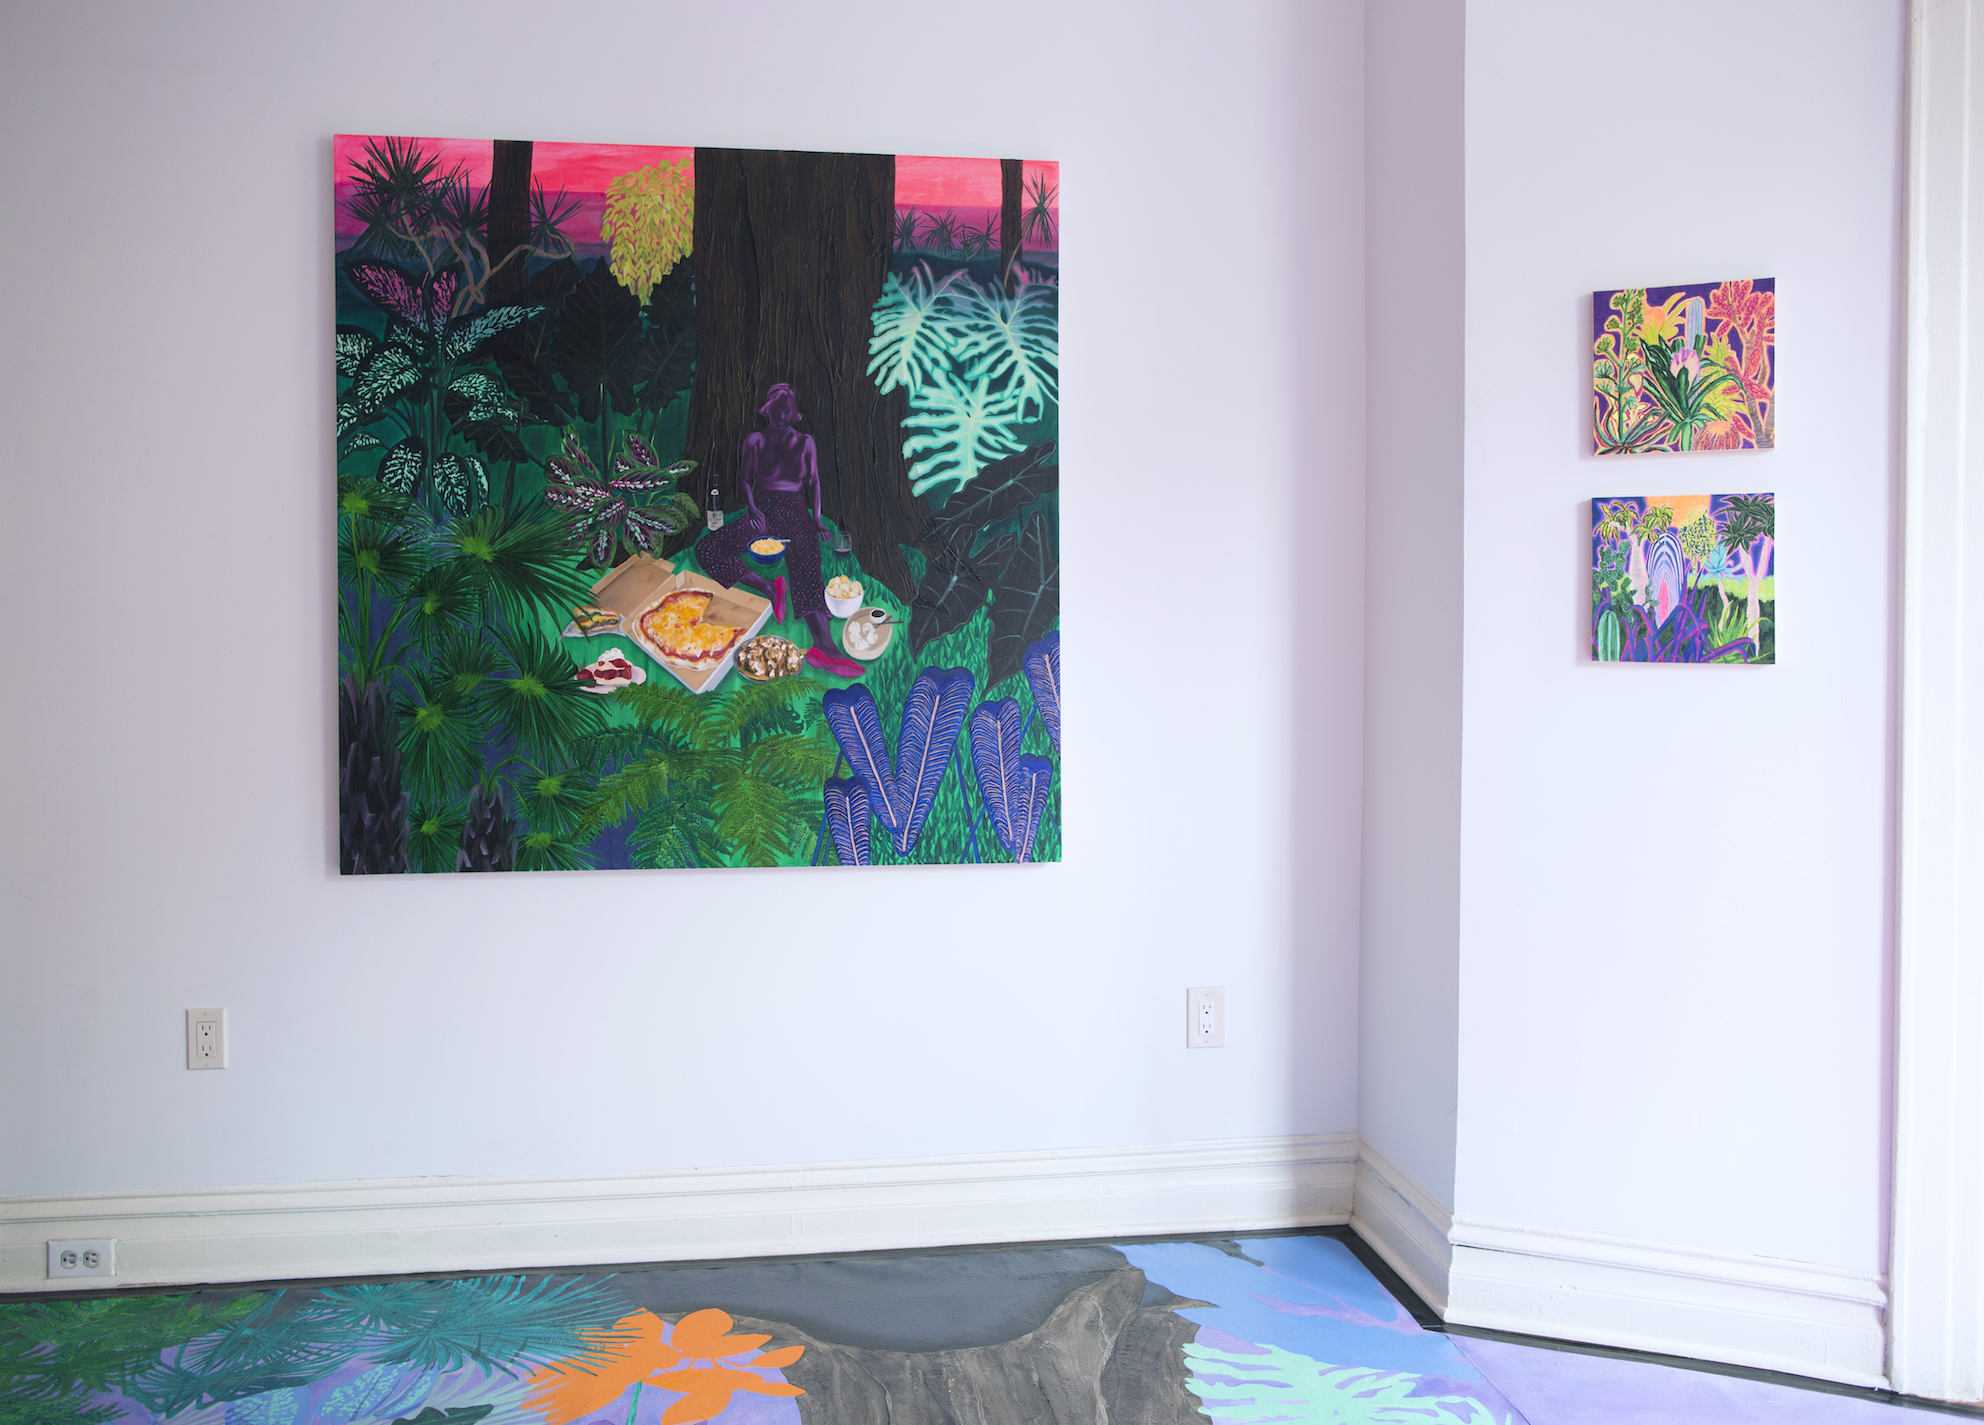 Install shot from Recreation Room